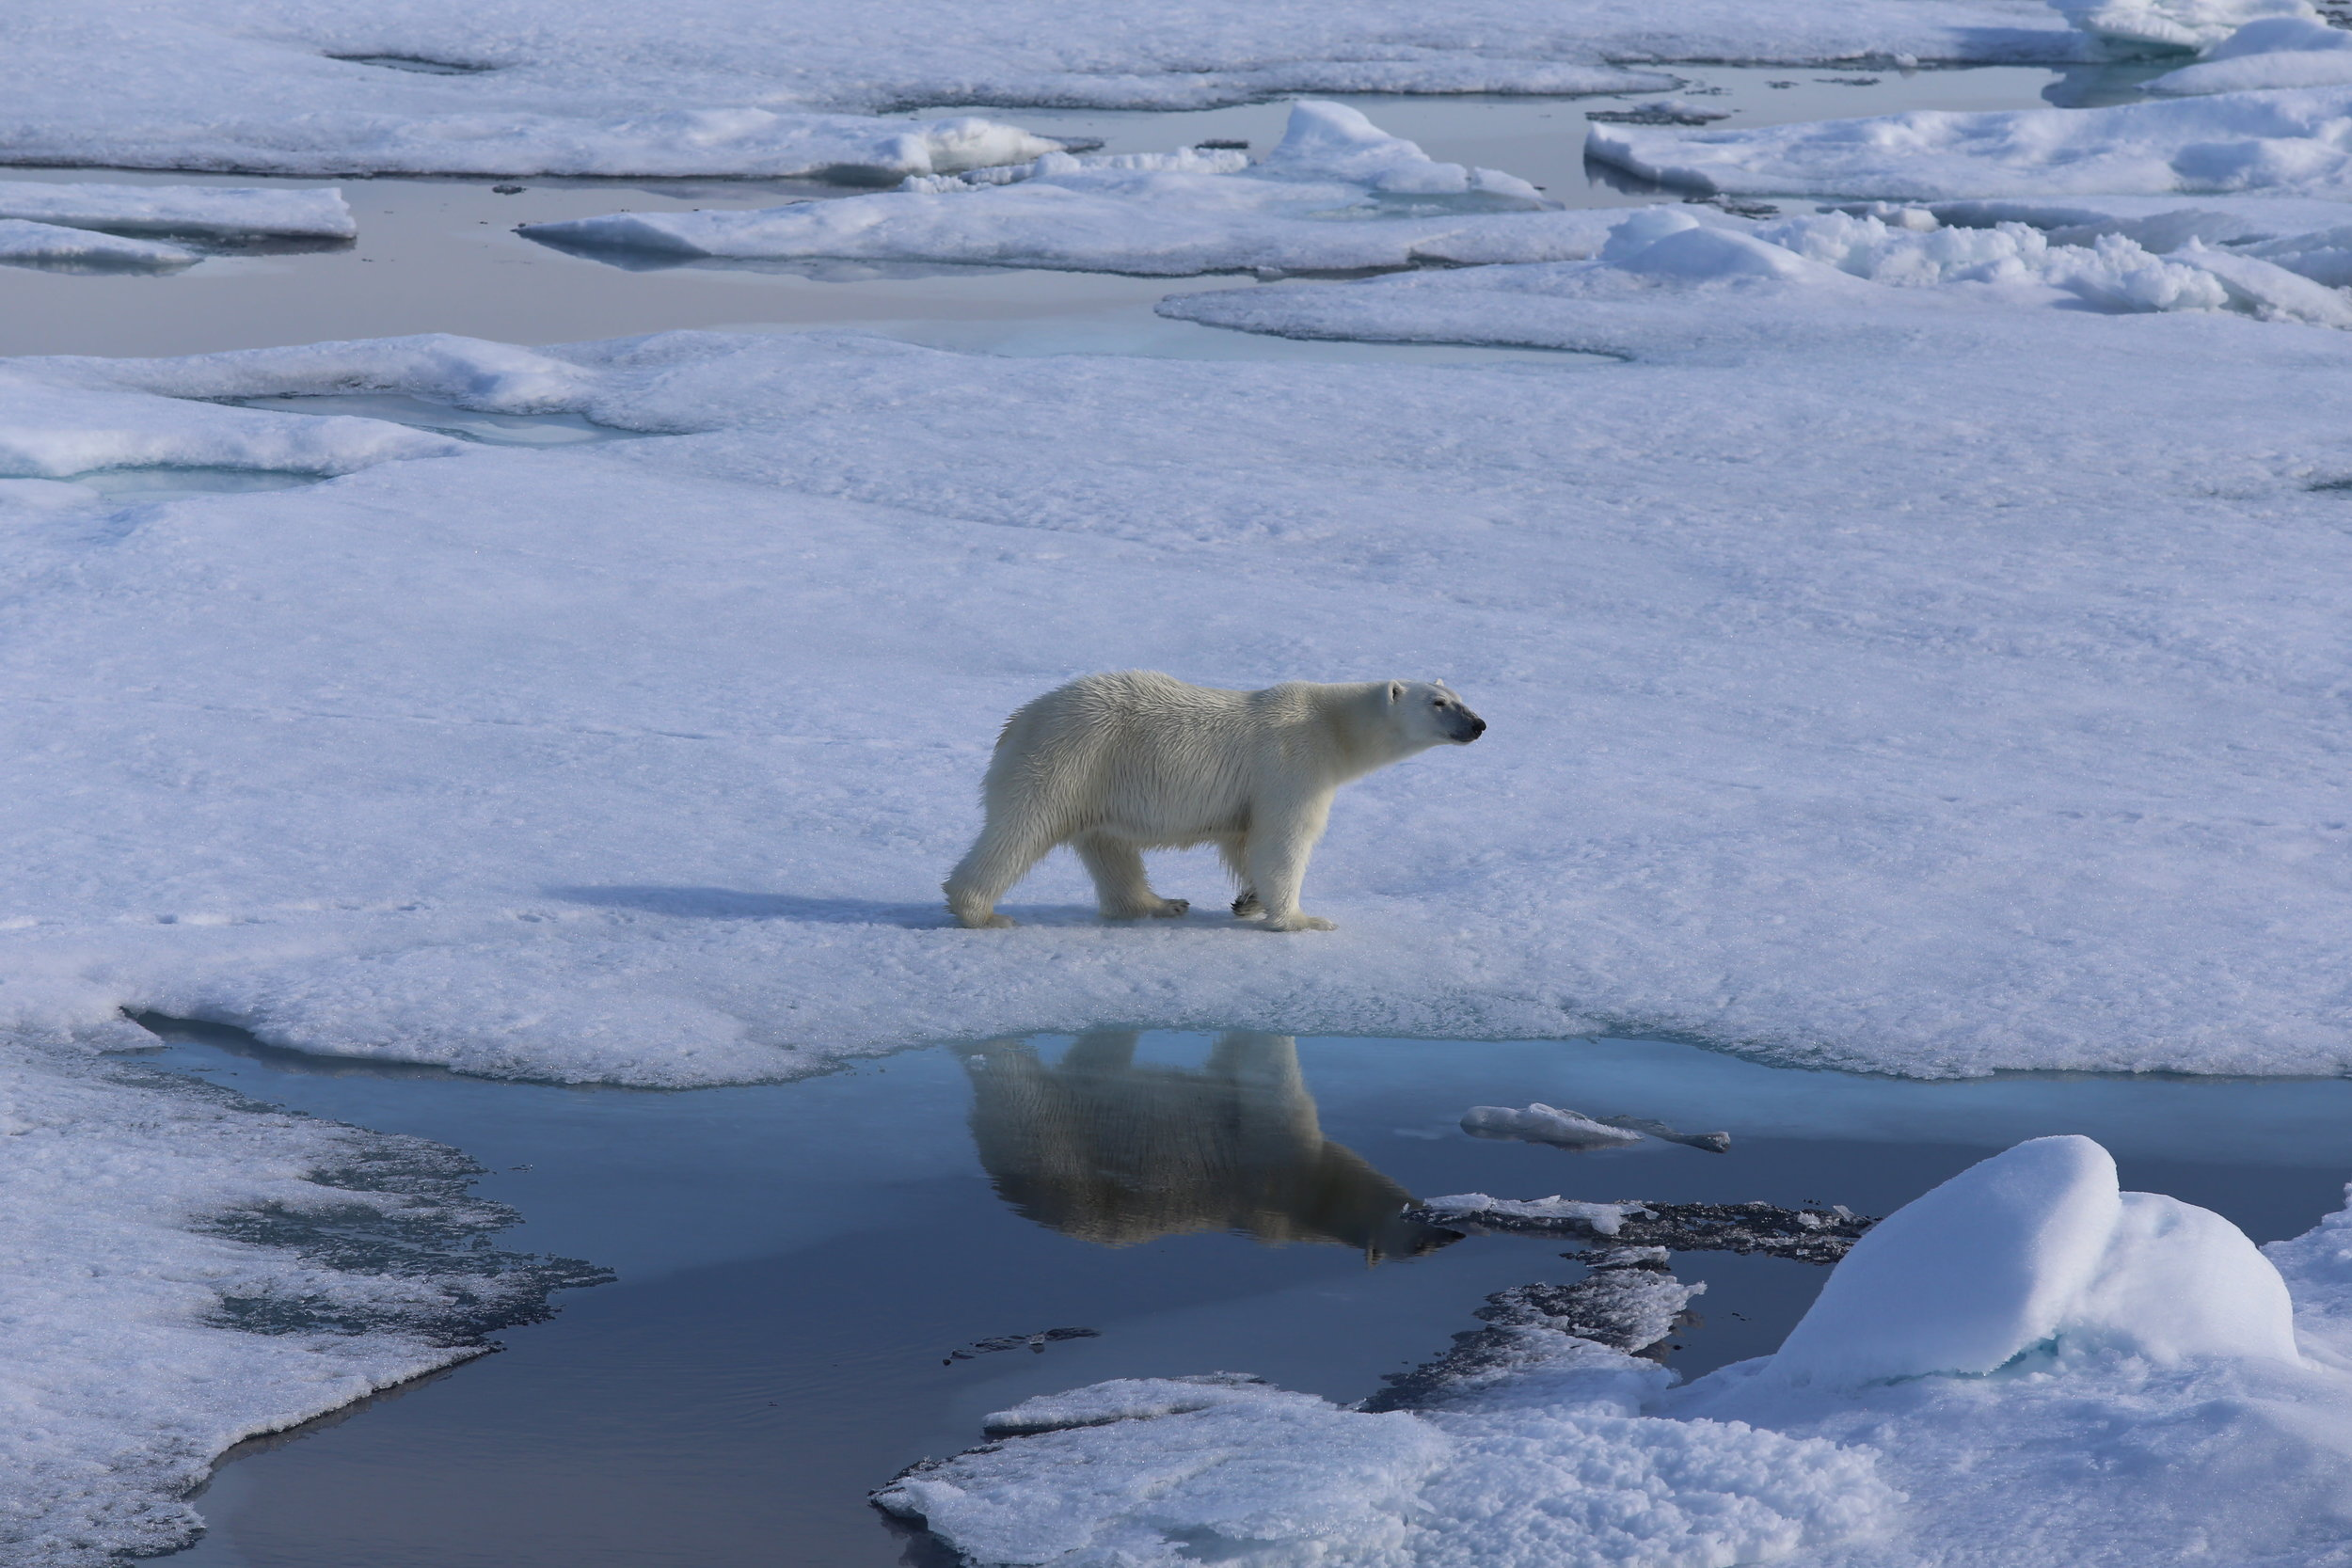 Polar bears use sea ice to hunt their favourite prey, ringed seals. Photo: Magnus Andersen / Norwegian Polar Institute